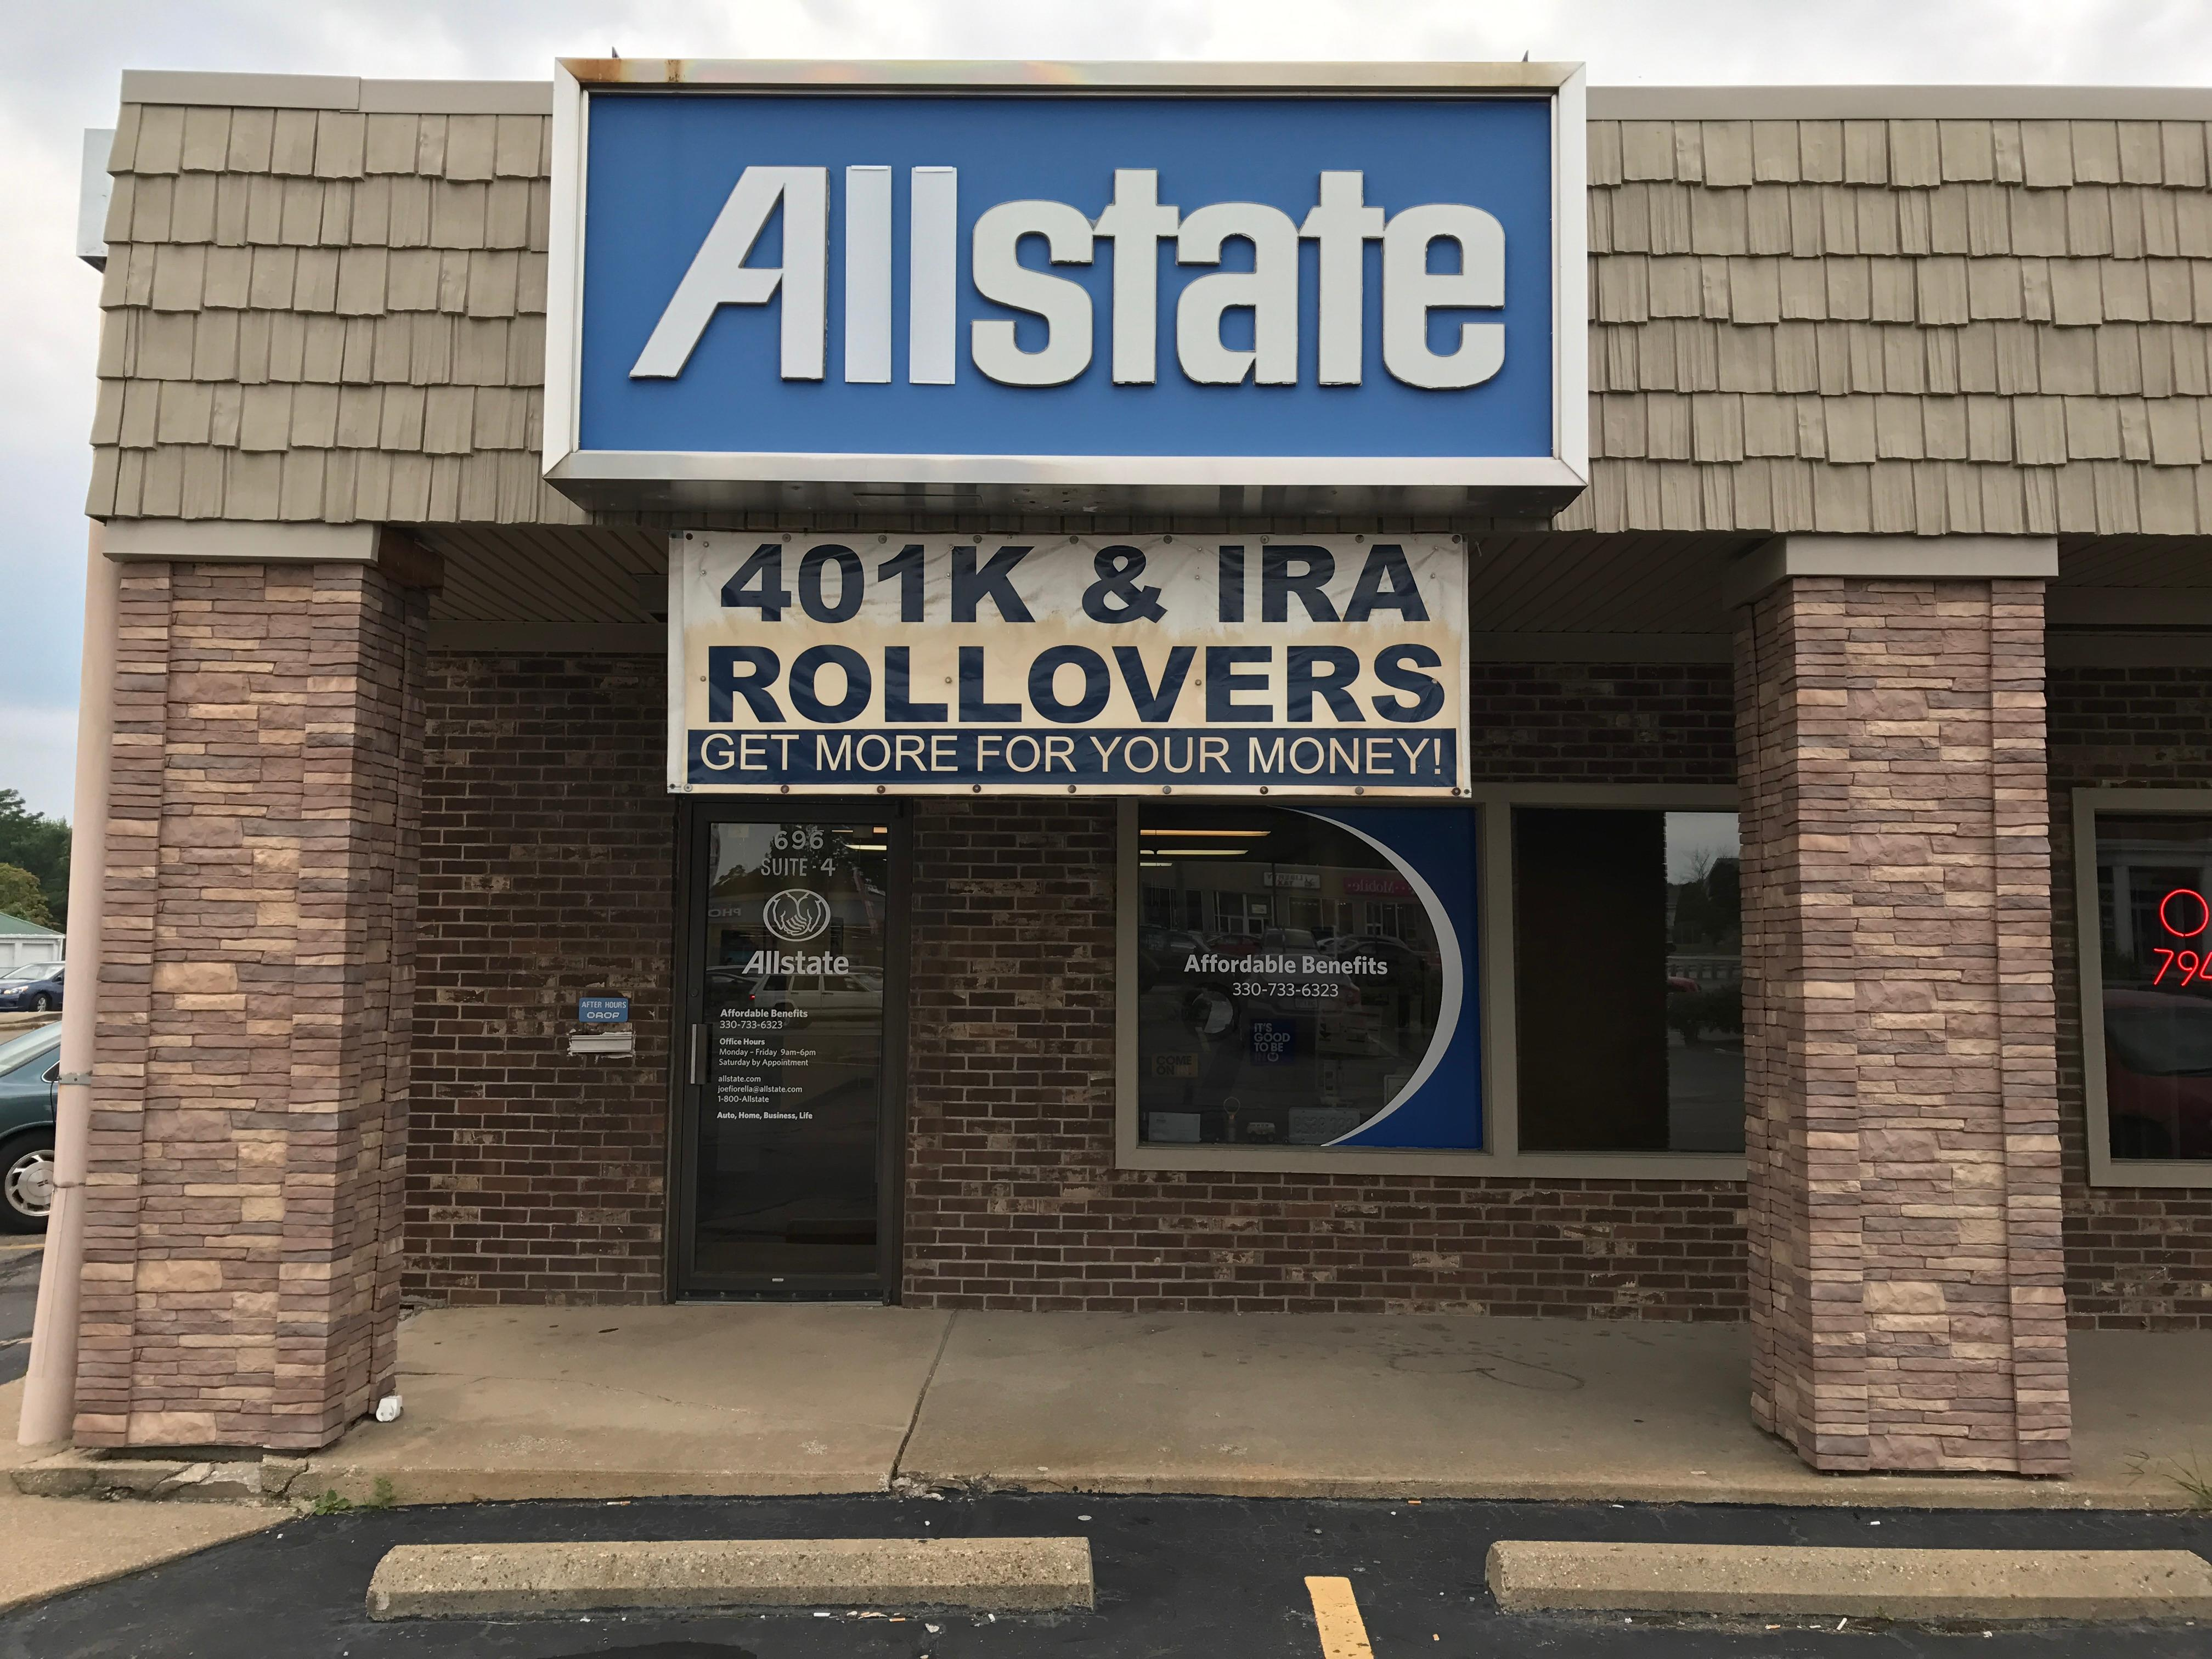 Life home car insurance quotes in akron oh allstate for Allstate motor club hotel discounts